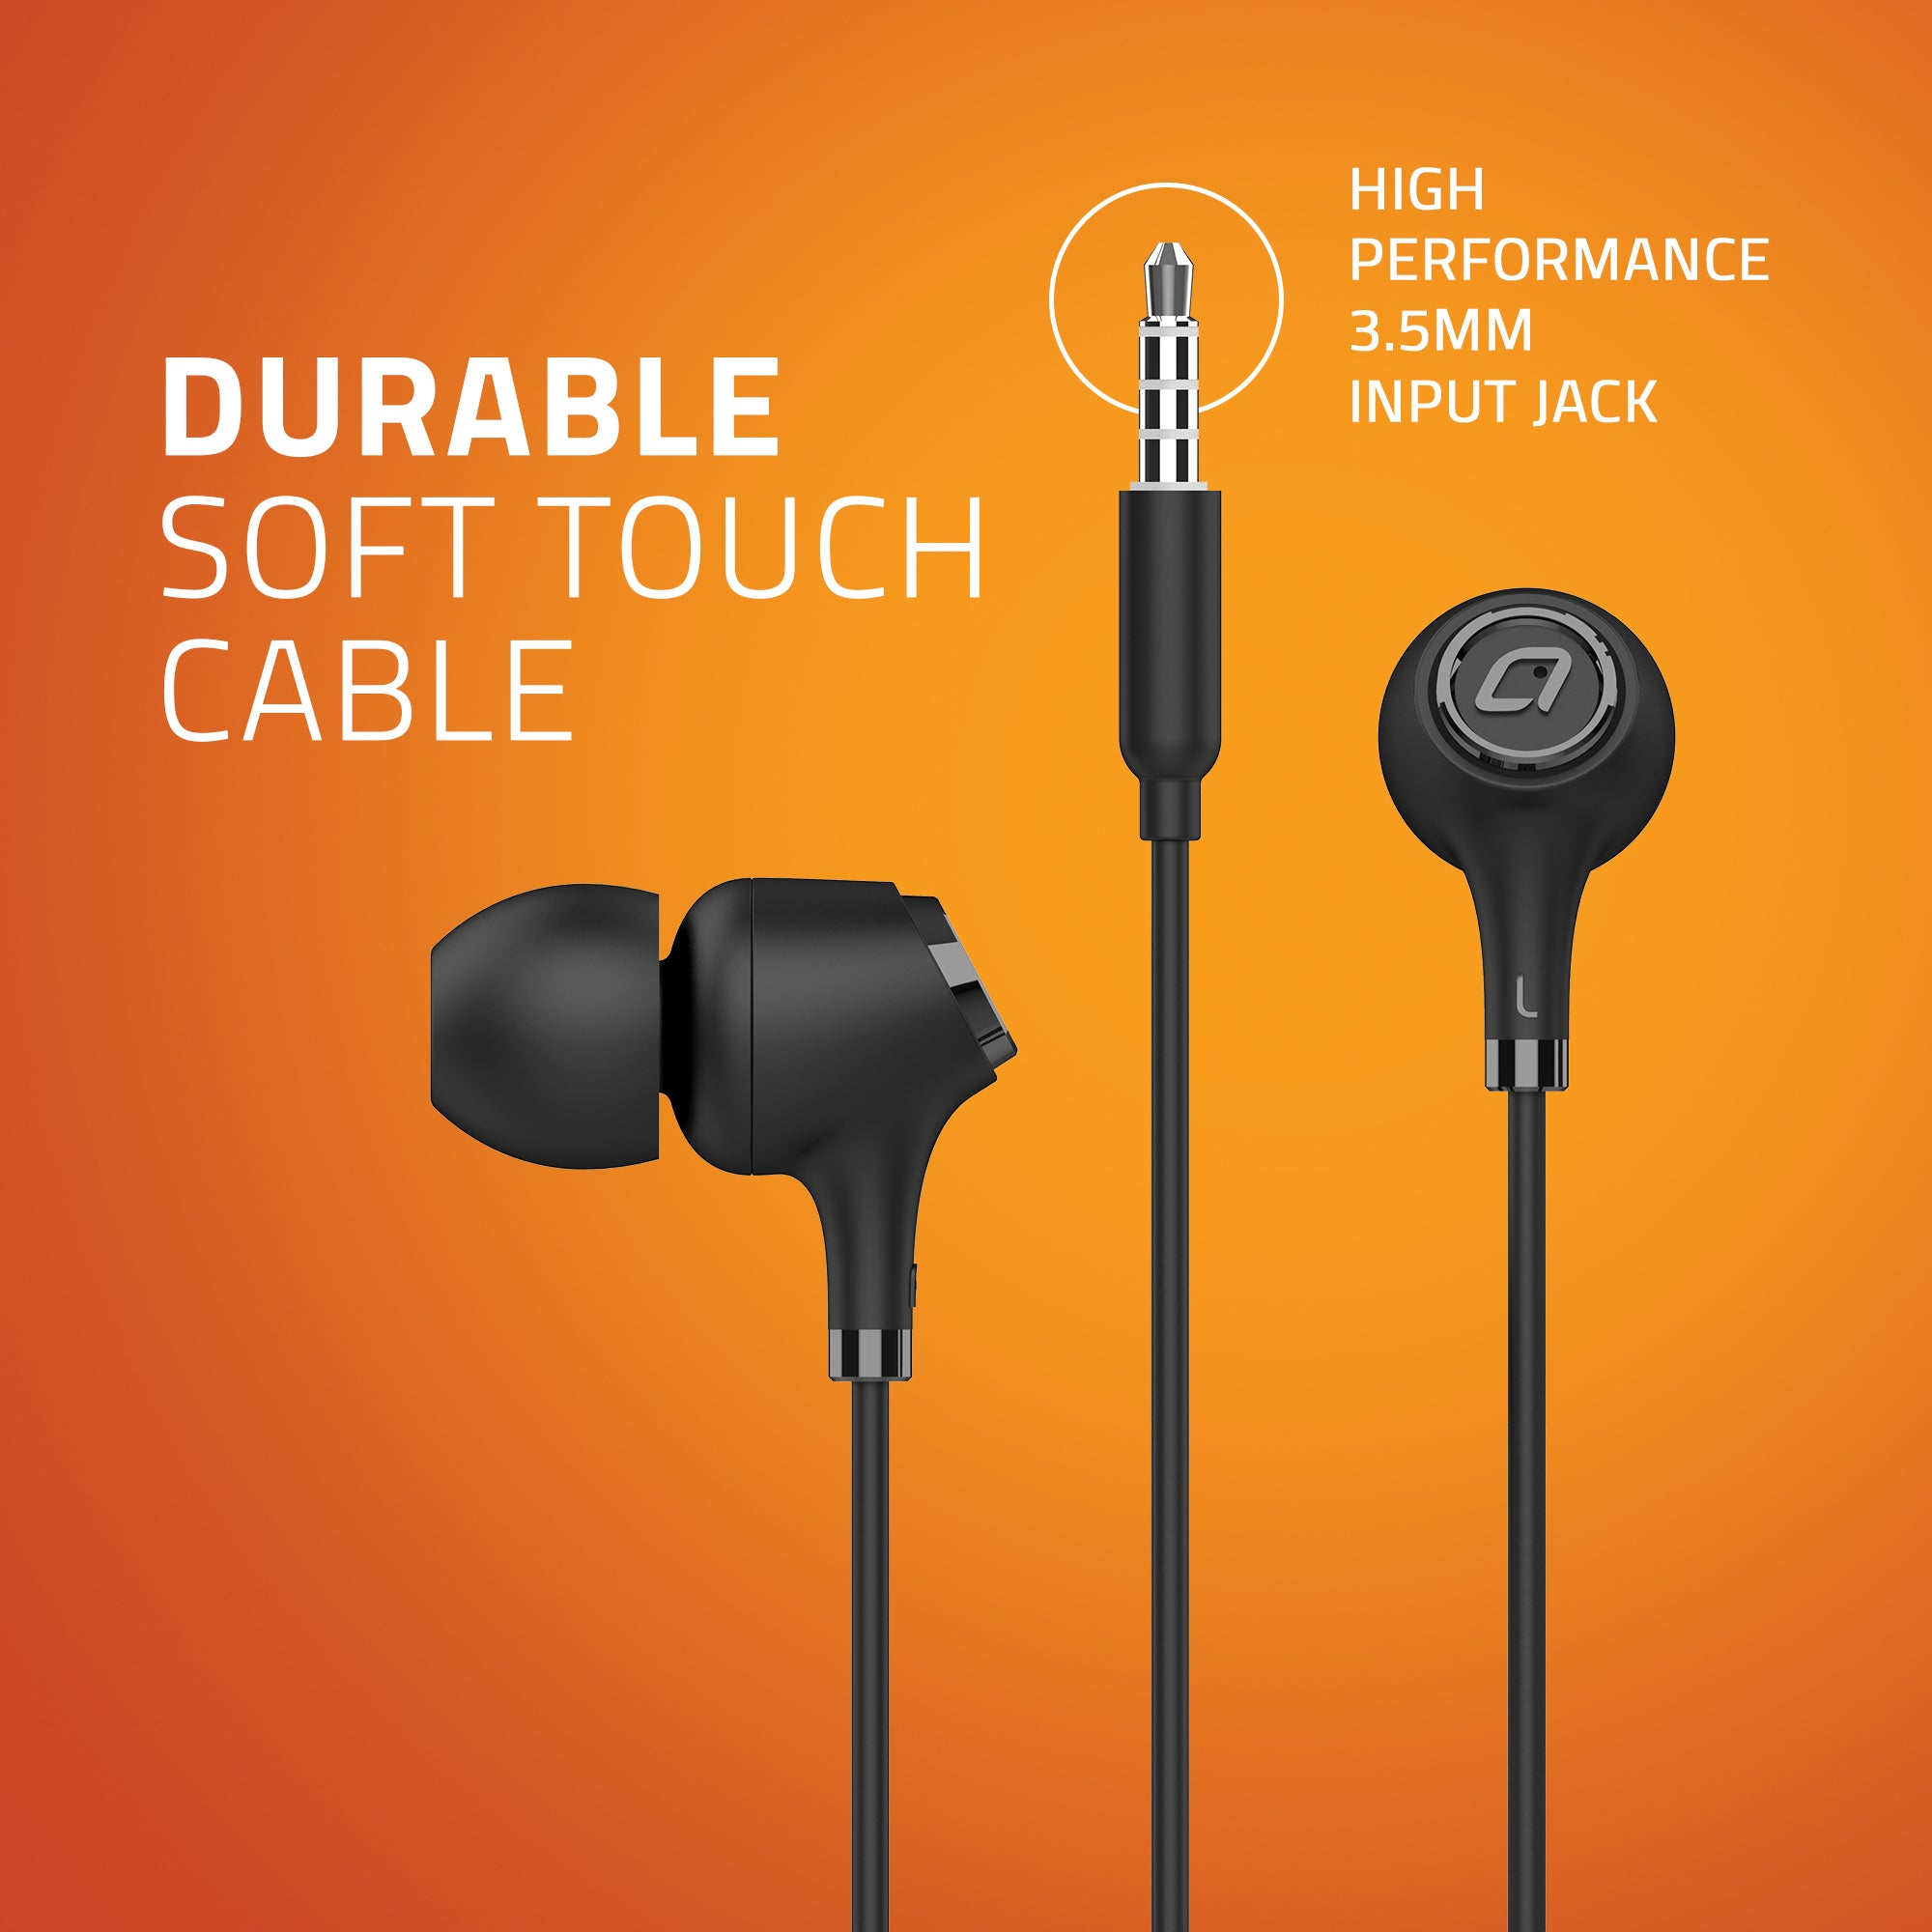 E500M Artis Wired Earphones - Durable Soft touch Cable